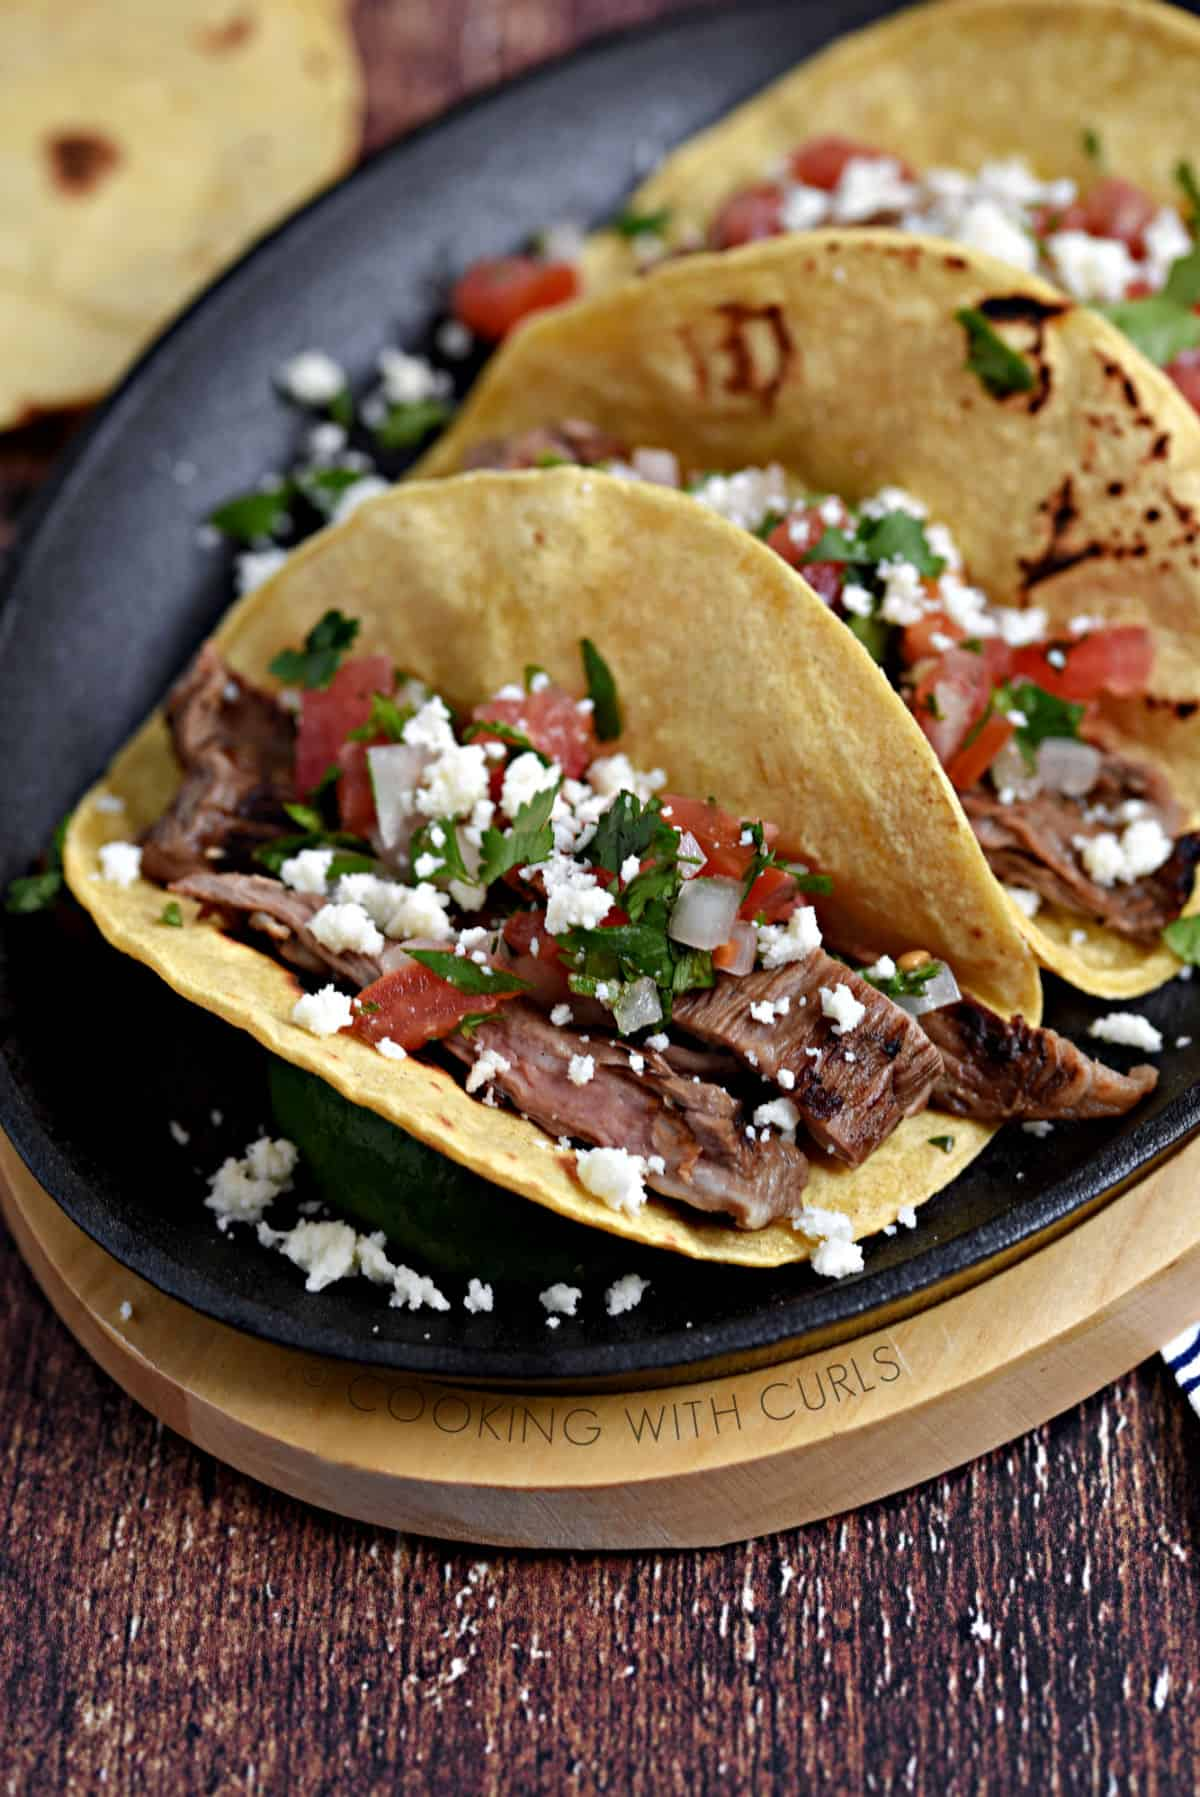 Corn tortillas filled with steak, diced tomatoes and onions sprinkled with queso crumbles and cilantro on a skillet.